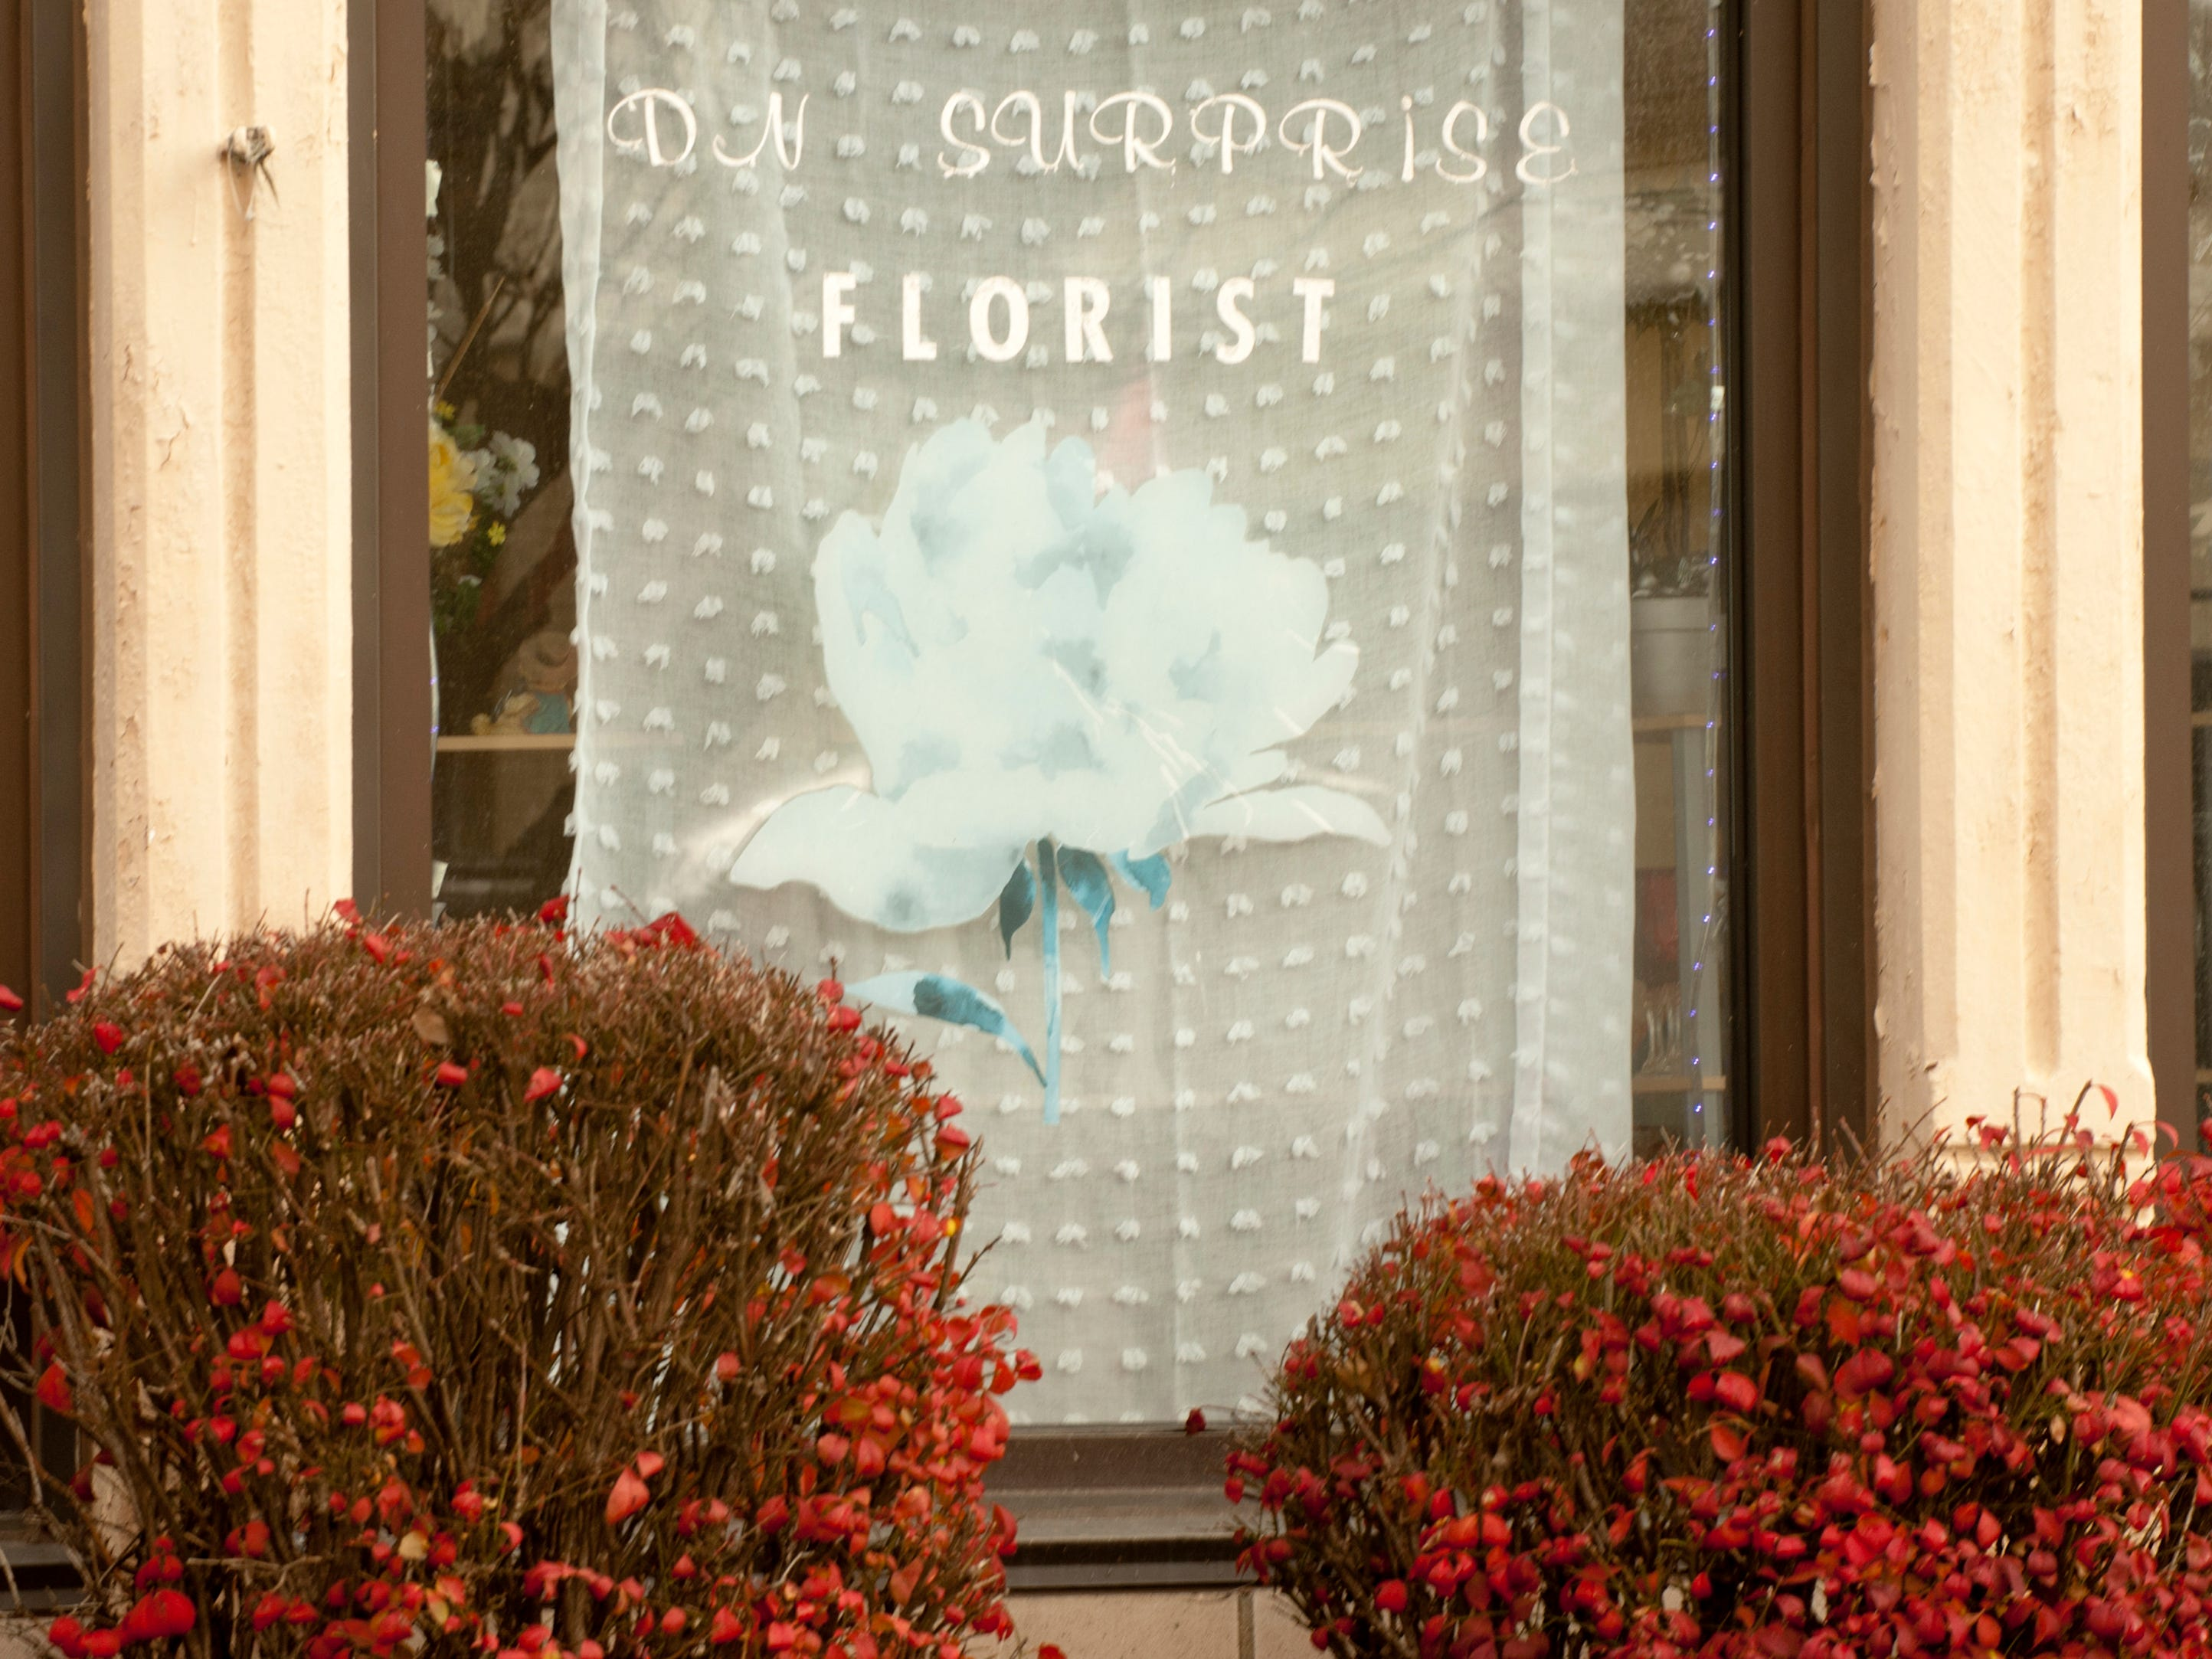 Next door to Blue Palm Access, is the D.N. Surprise Florist Shop, also at 2001 W. Broadway,24 November 2018